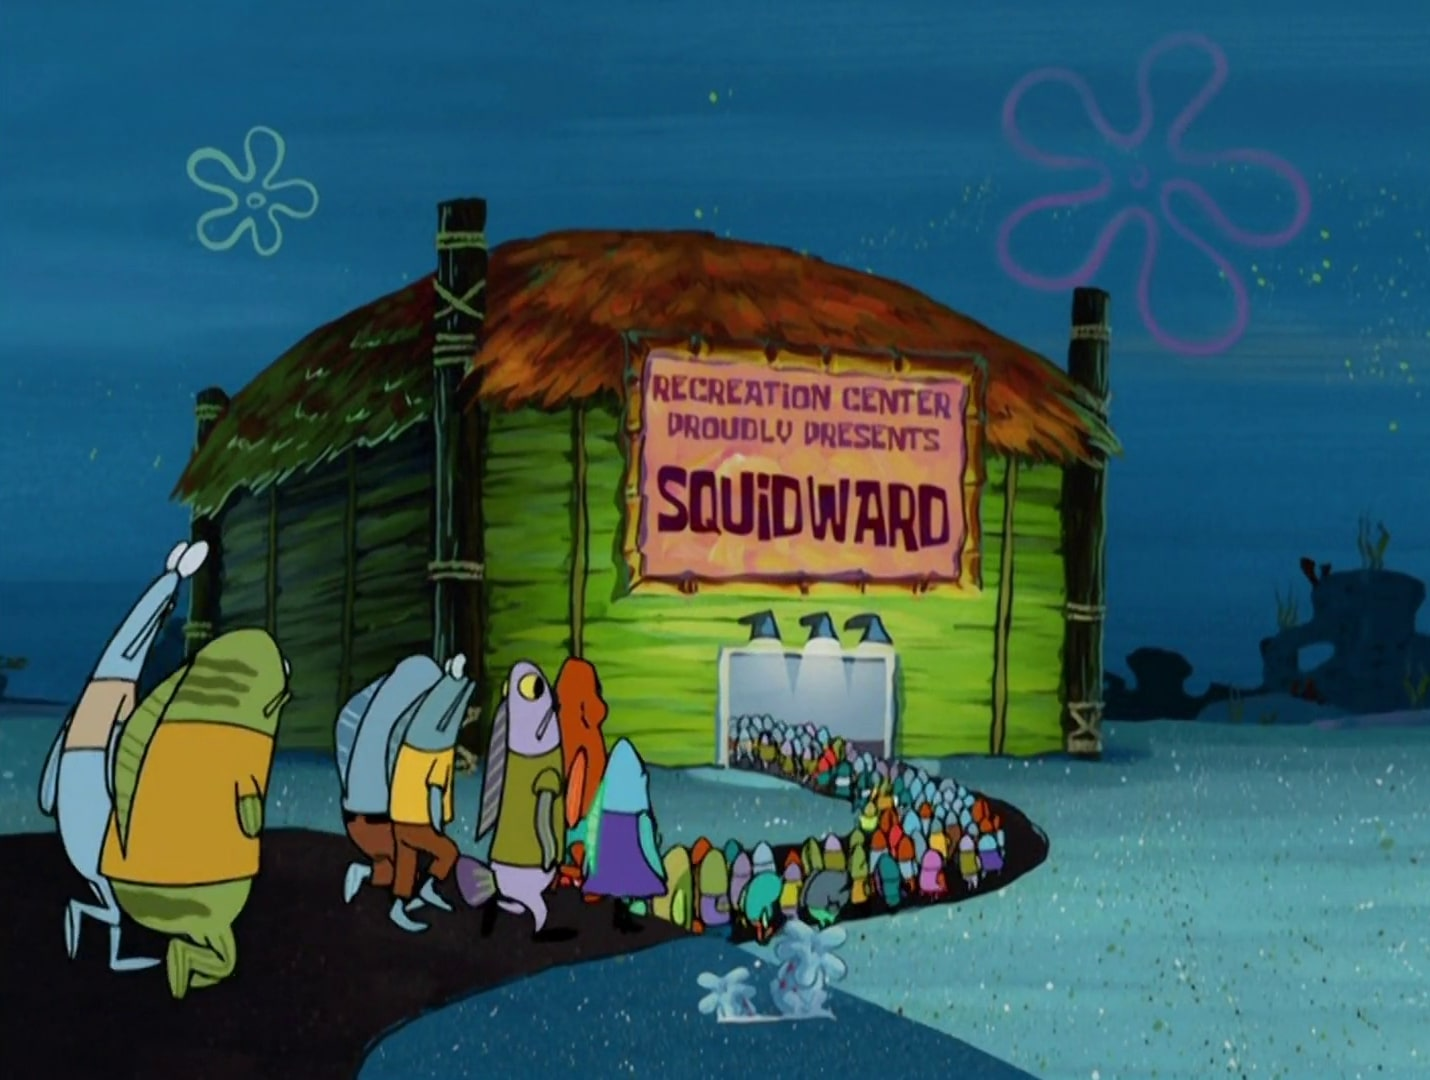 bikini bottom buildings - photo #27